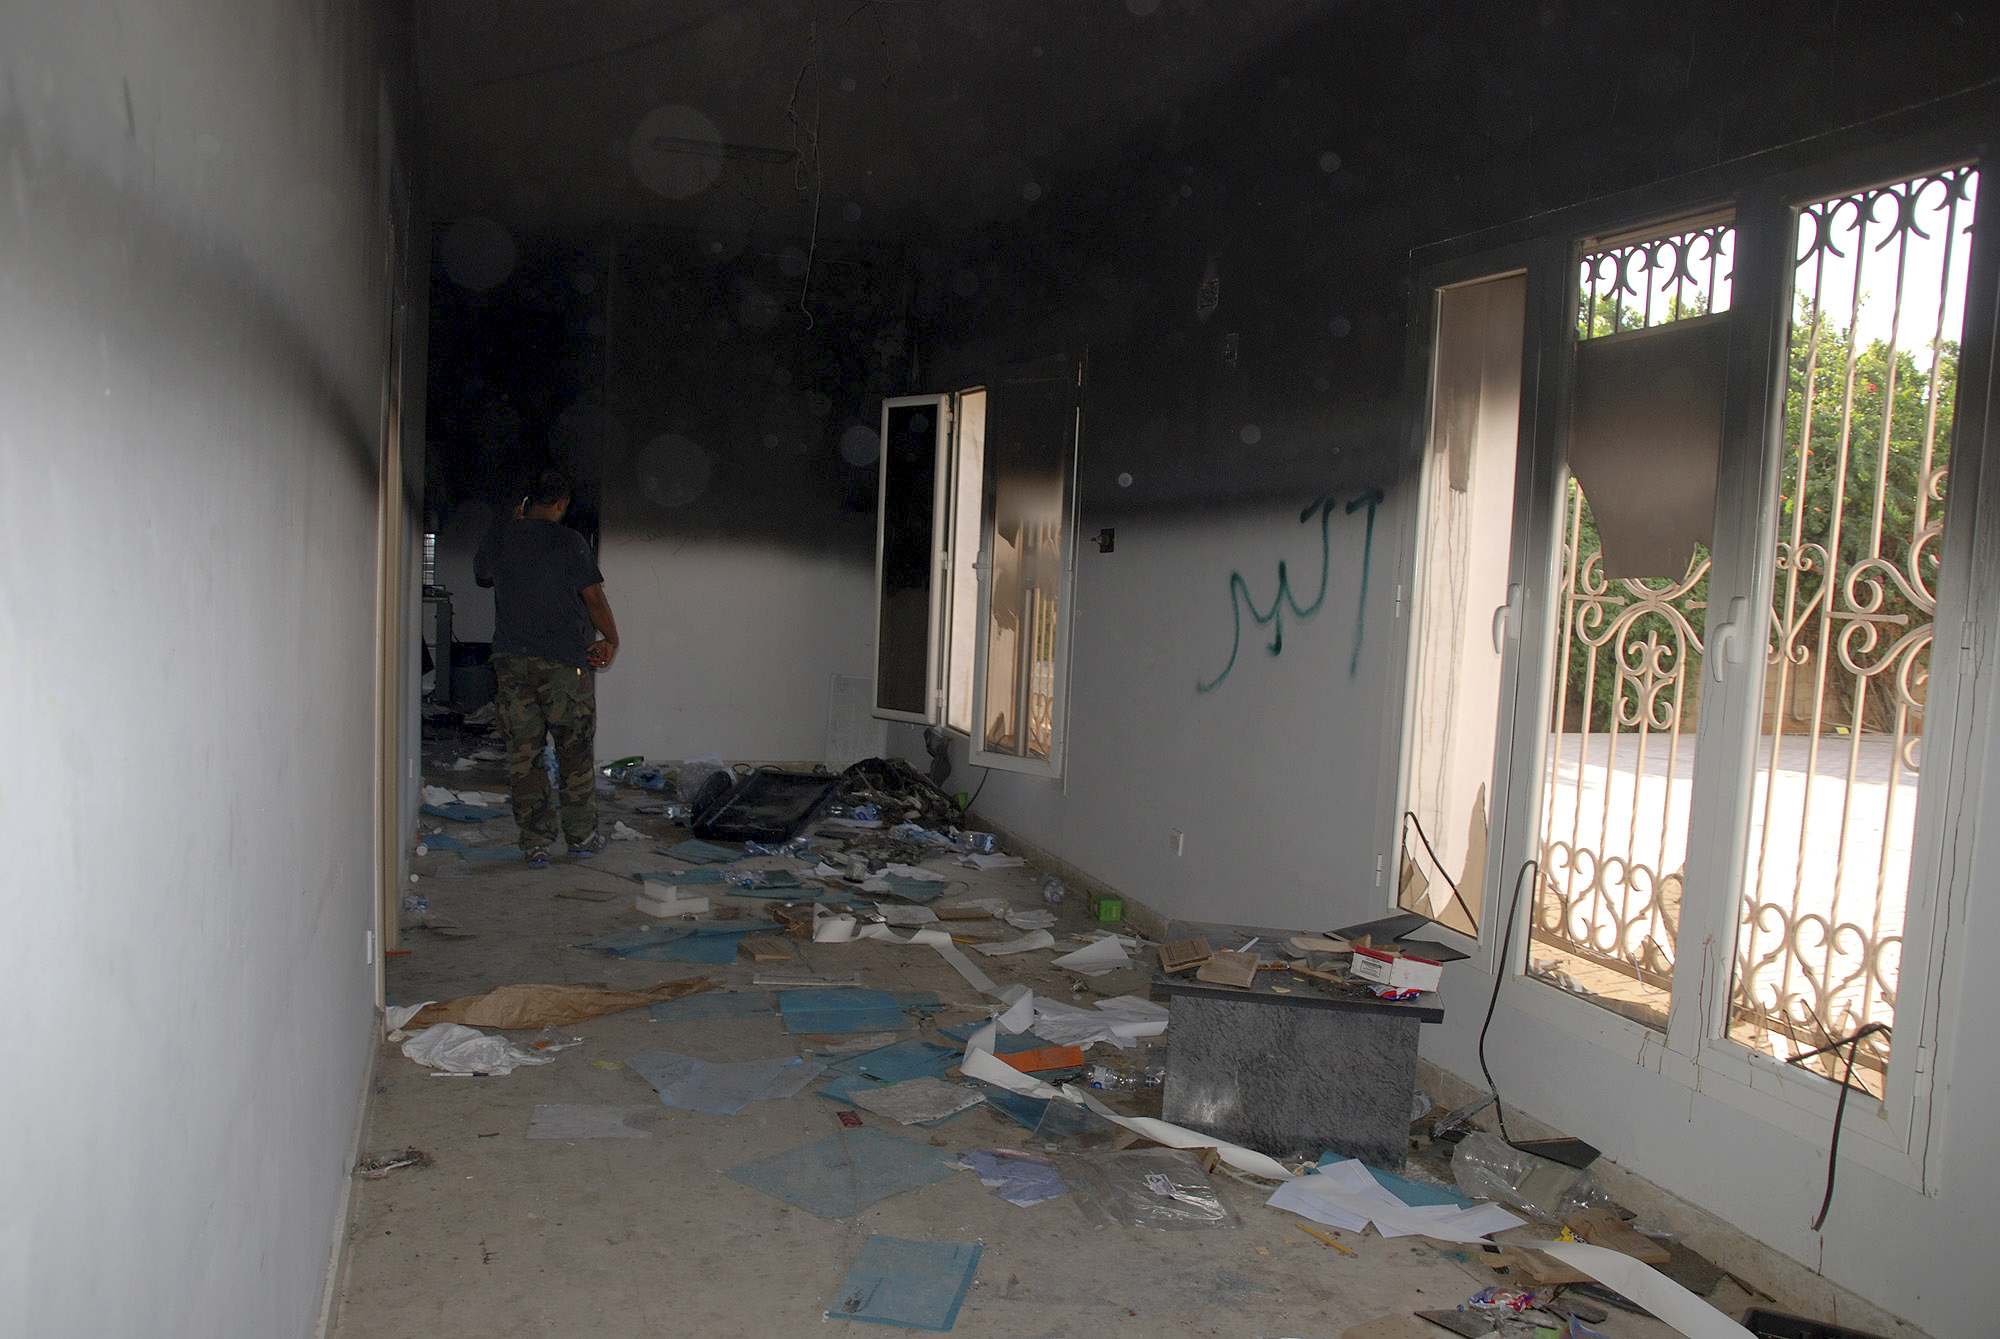 This Sept. 12, 2012, file photo shows a man walking through a room in the gutted U.S. Consulate in Benghazi, Libya. (Ibrahim Alaguri/AP)